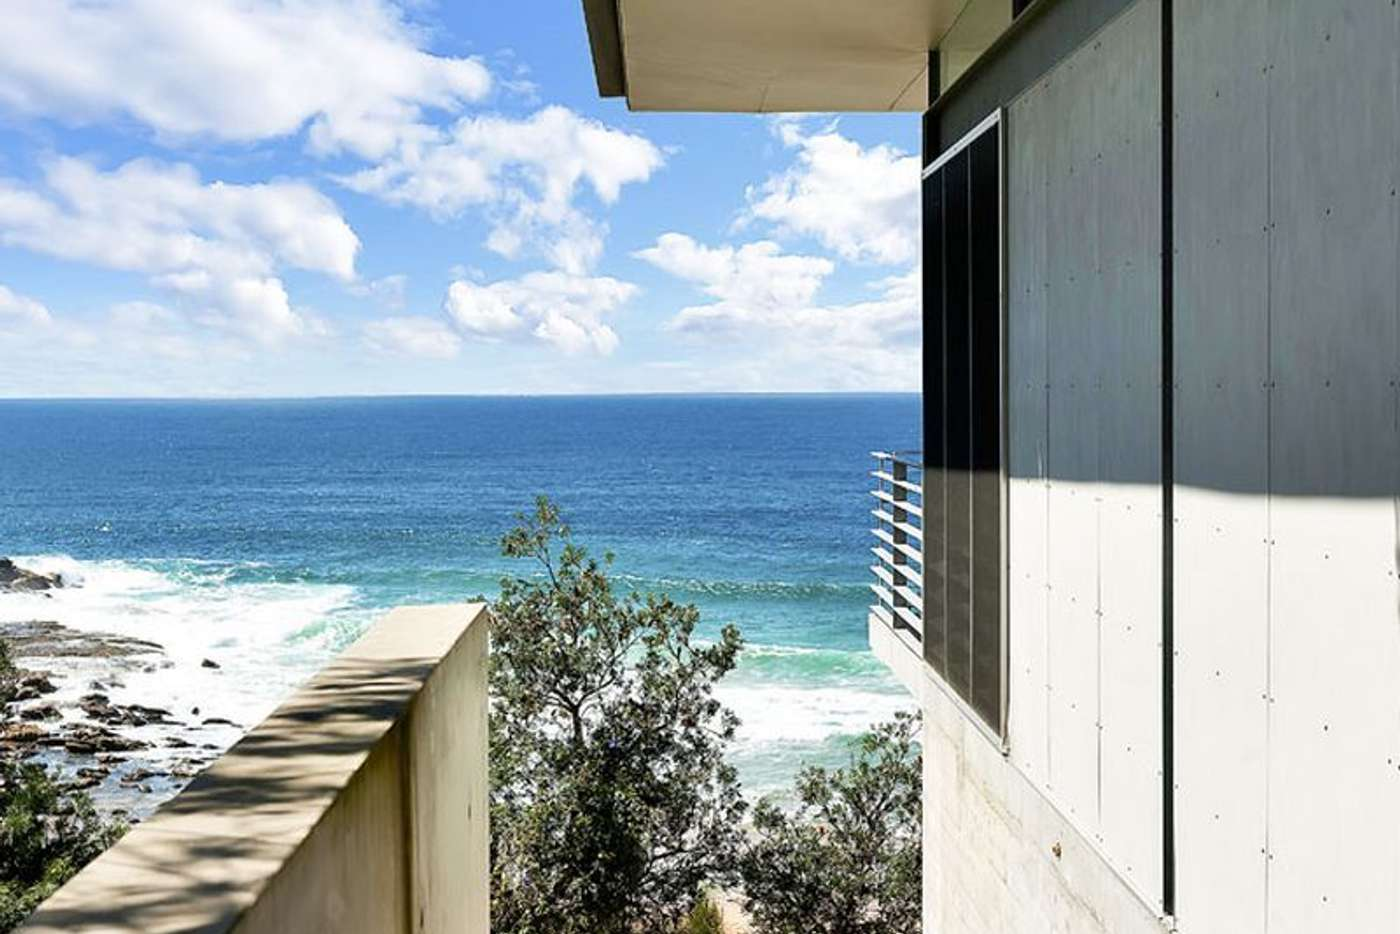 Main view of Homely house listing, 251 Whale Beach Road, Whale Beach NSW 2107